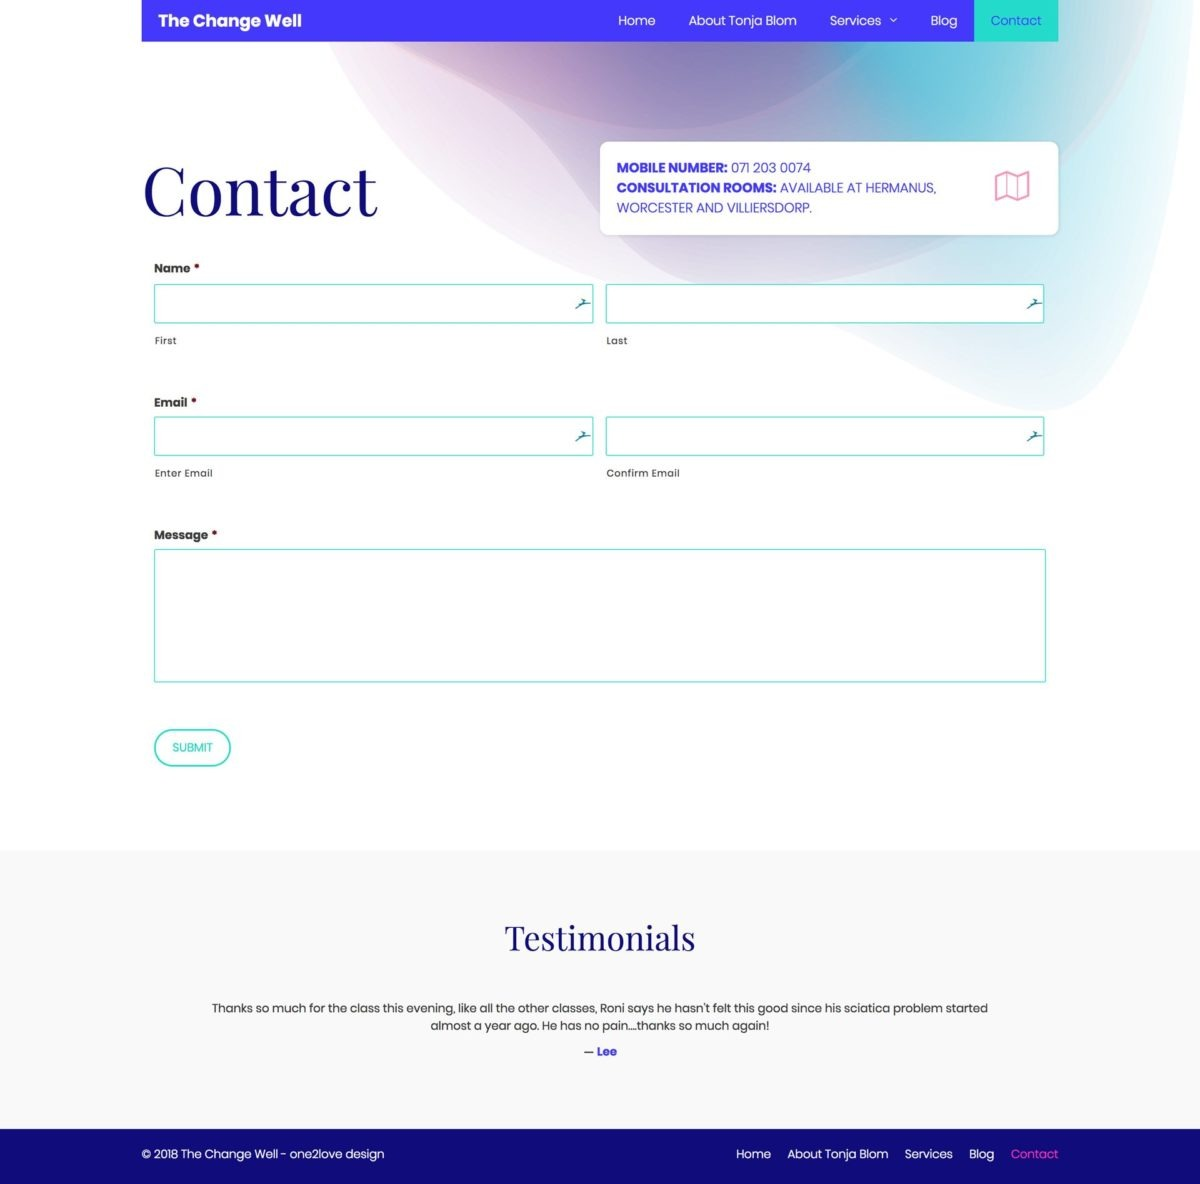 The Change Well Contact Page